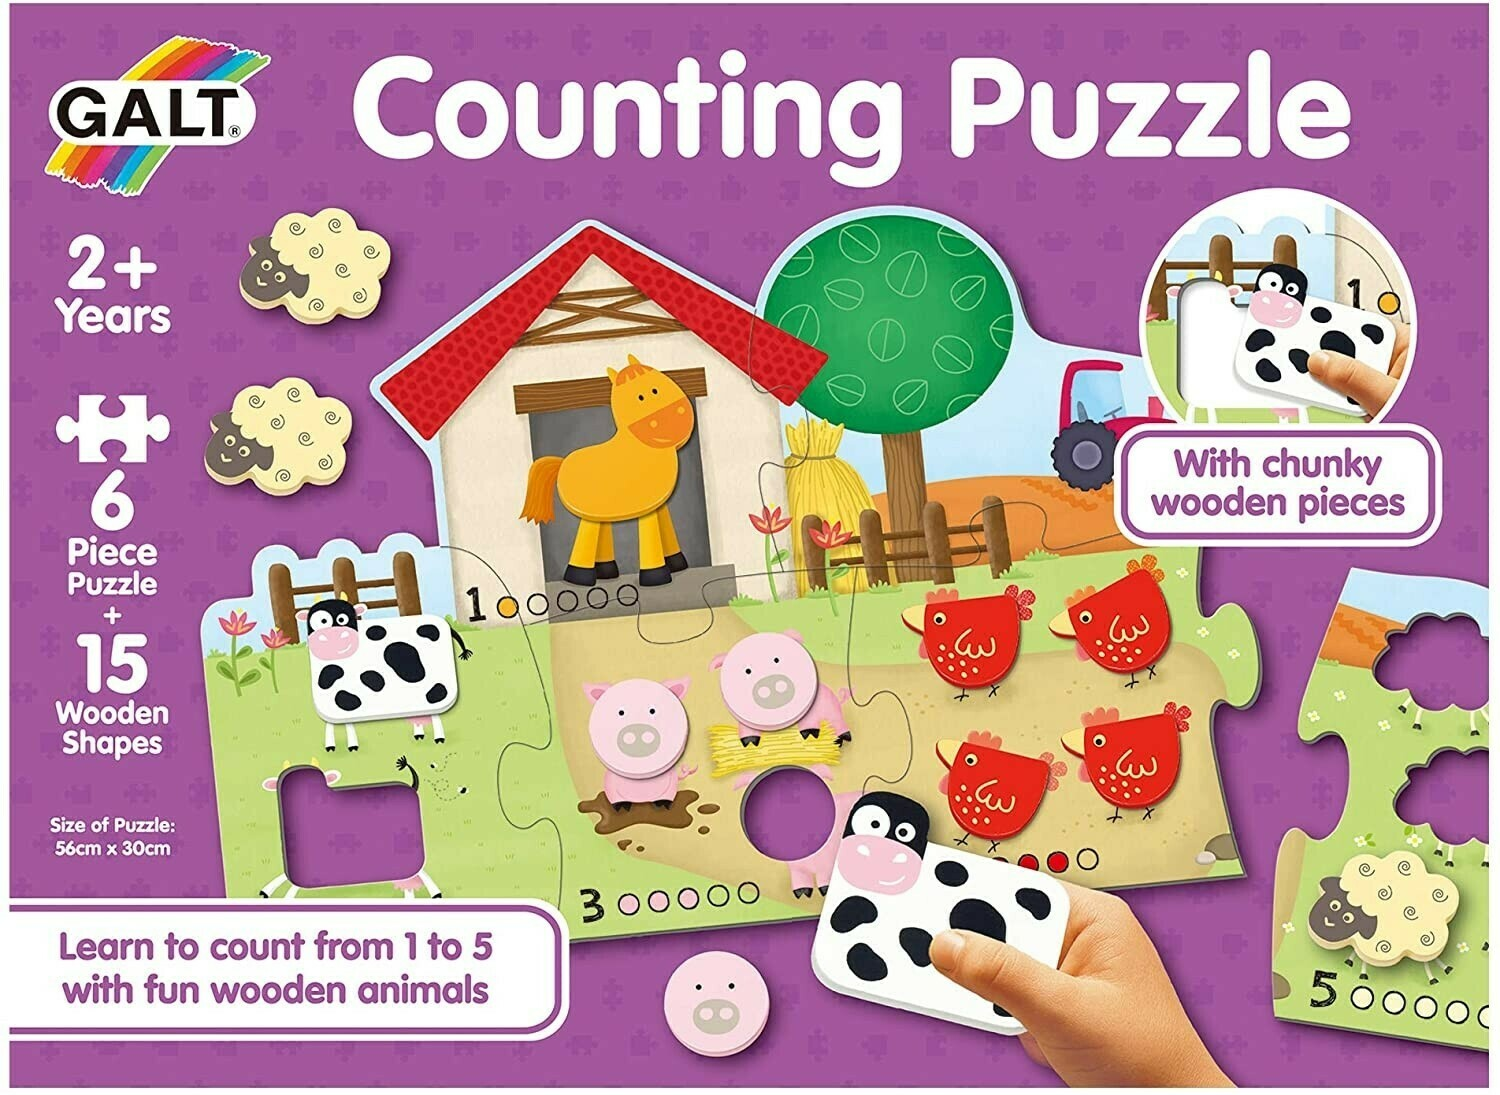 Counting Puzzle 6 Pc With 15 Wooden Shapes